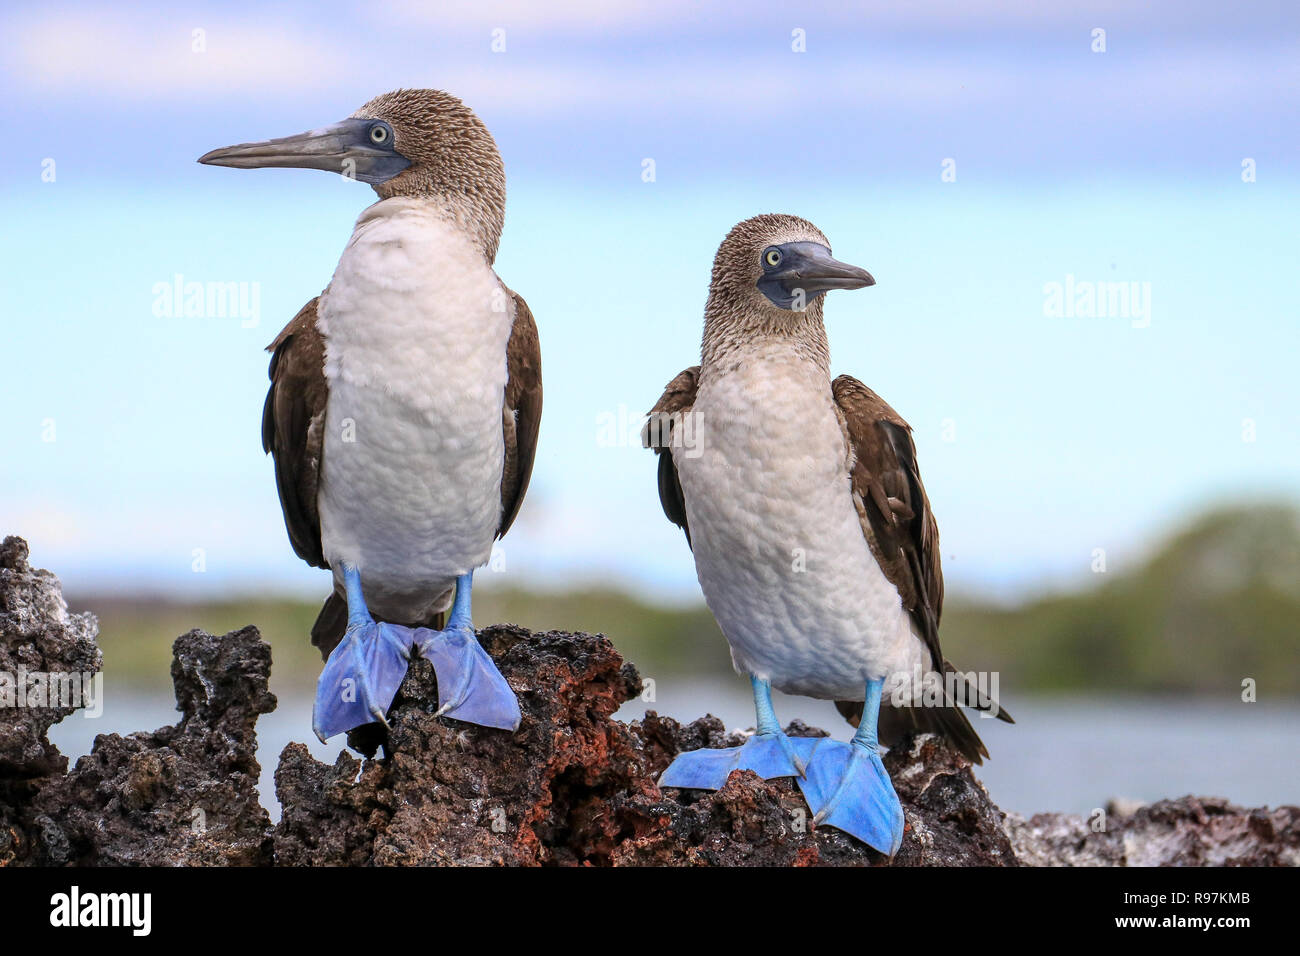 Blue-footed Boobies, Isabela Is., Galapagos - Stock Image